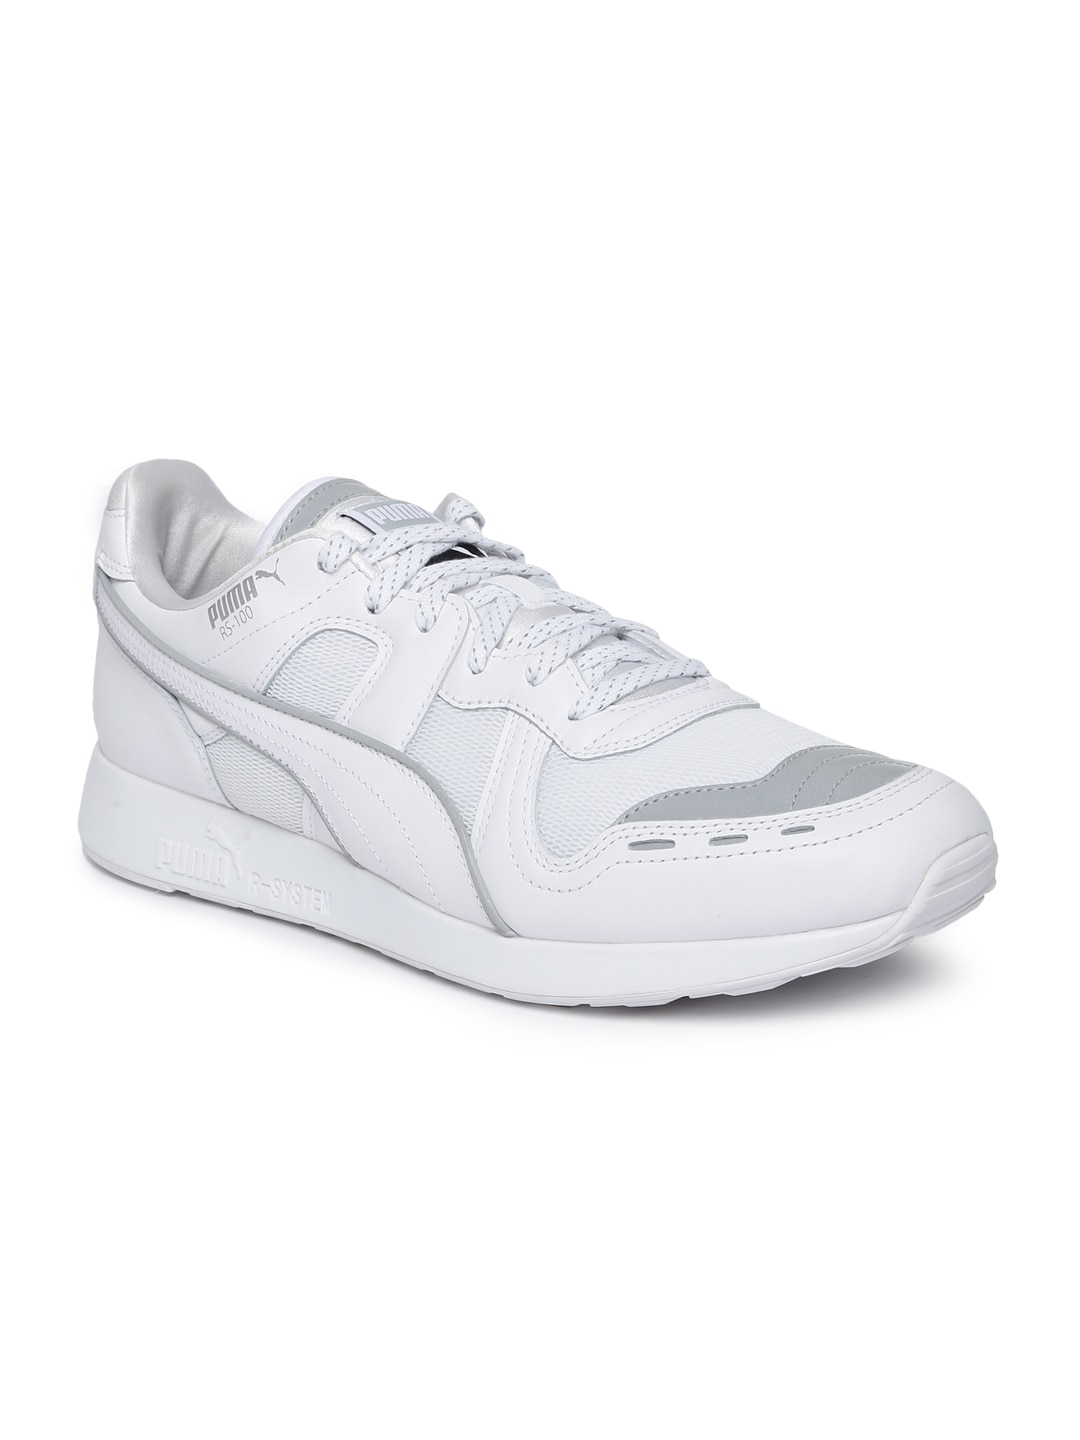 Rs 5000 Of Shoes India Buy Online In Puma wqCatEw